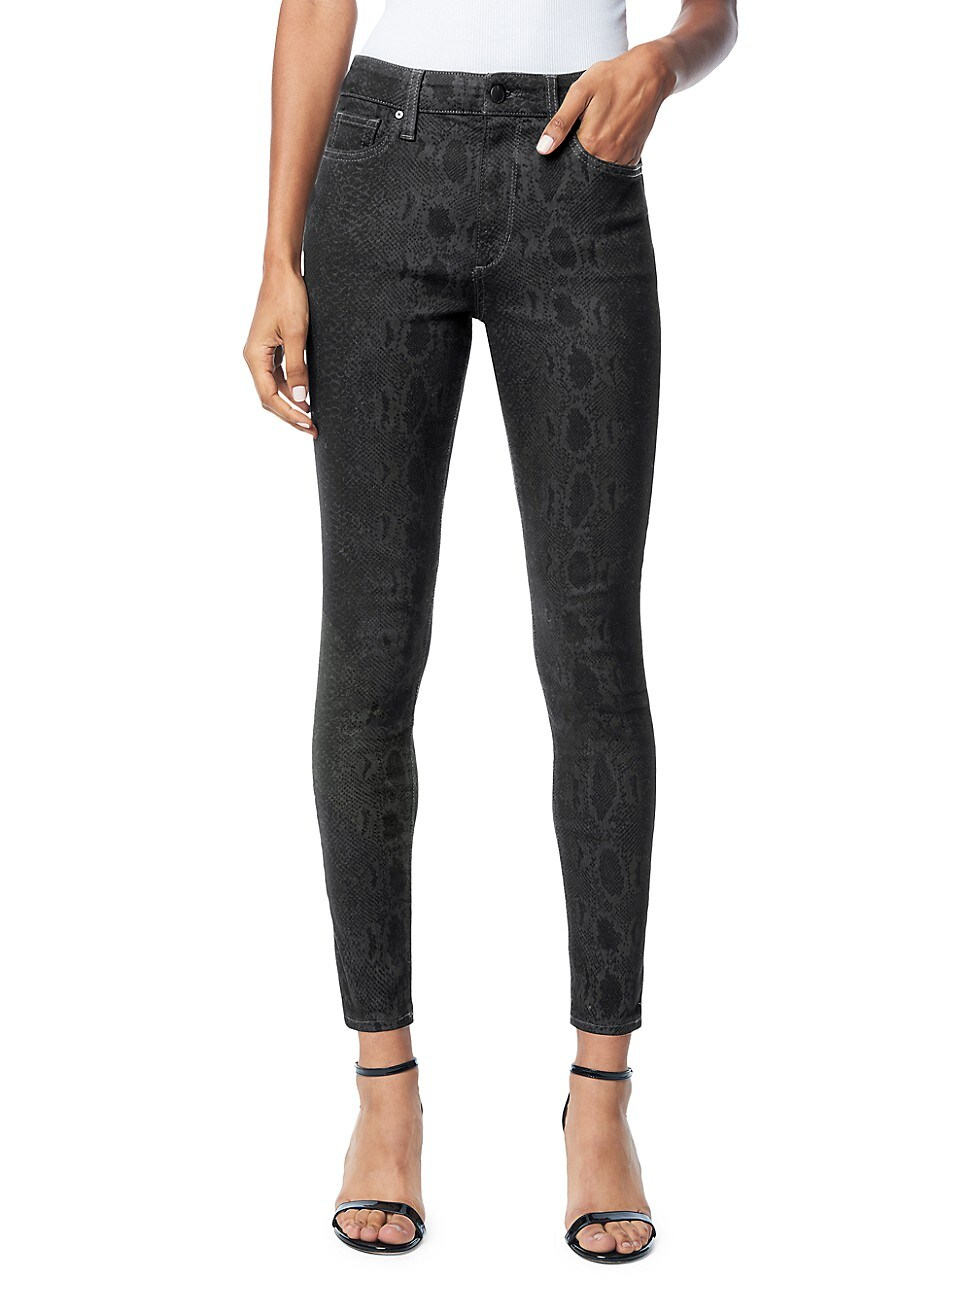 JOE'S JEANS WOMEN'S THE CHARLIE HIGH-RISE COATED SNAKE-PRINT ANKLE SKINNY JEANS